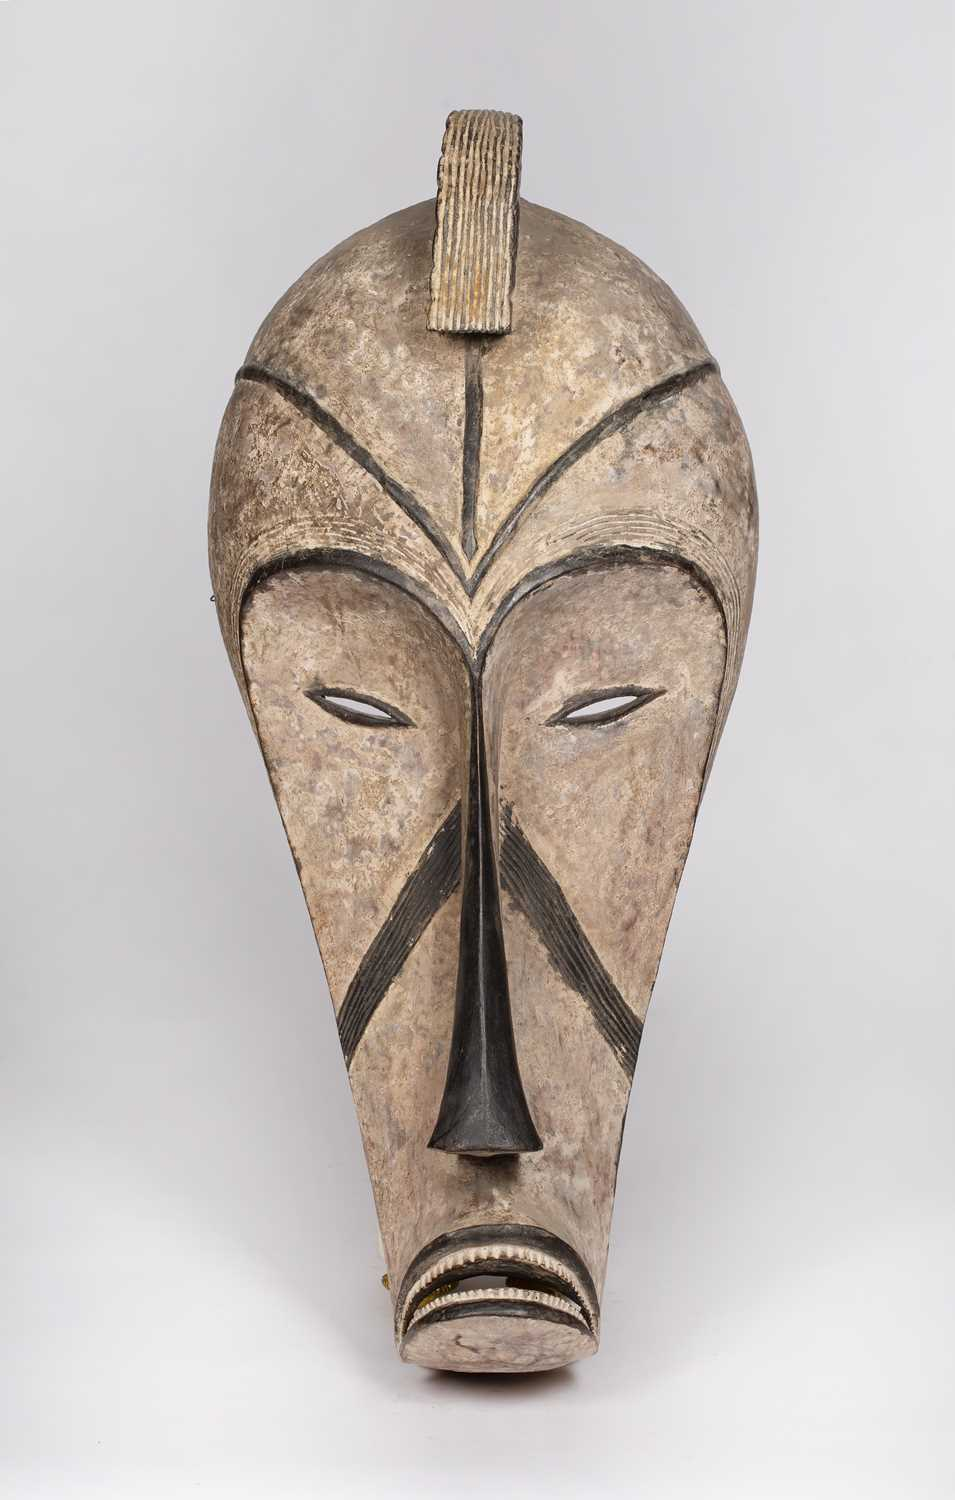 A Fang mask, Gabon, carved wood with incised line marks with black and white pigments, 74cm high